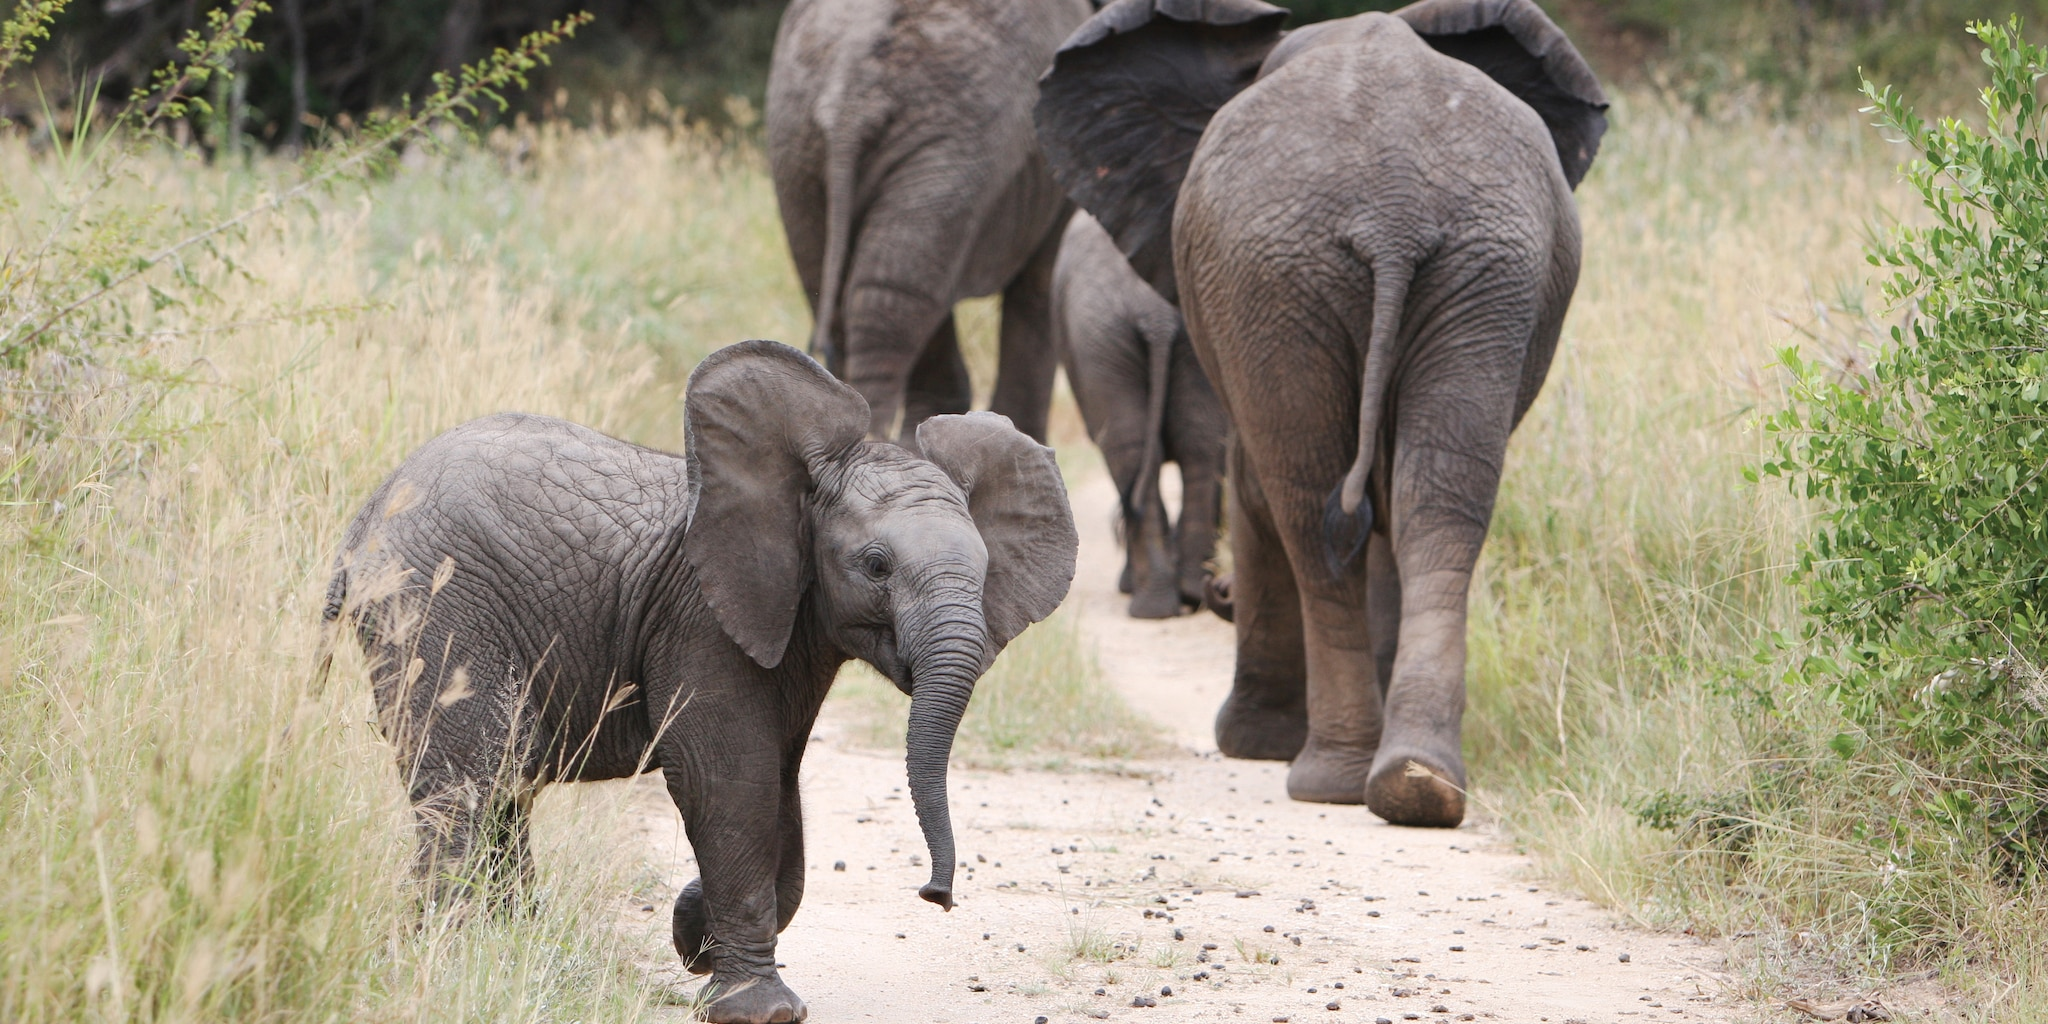 A baby elephant looks around as the rest of the herd continues along a South African trail